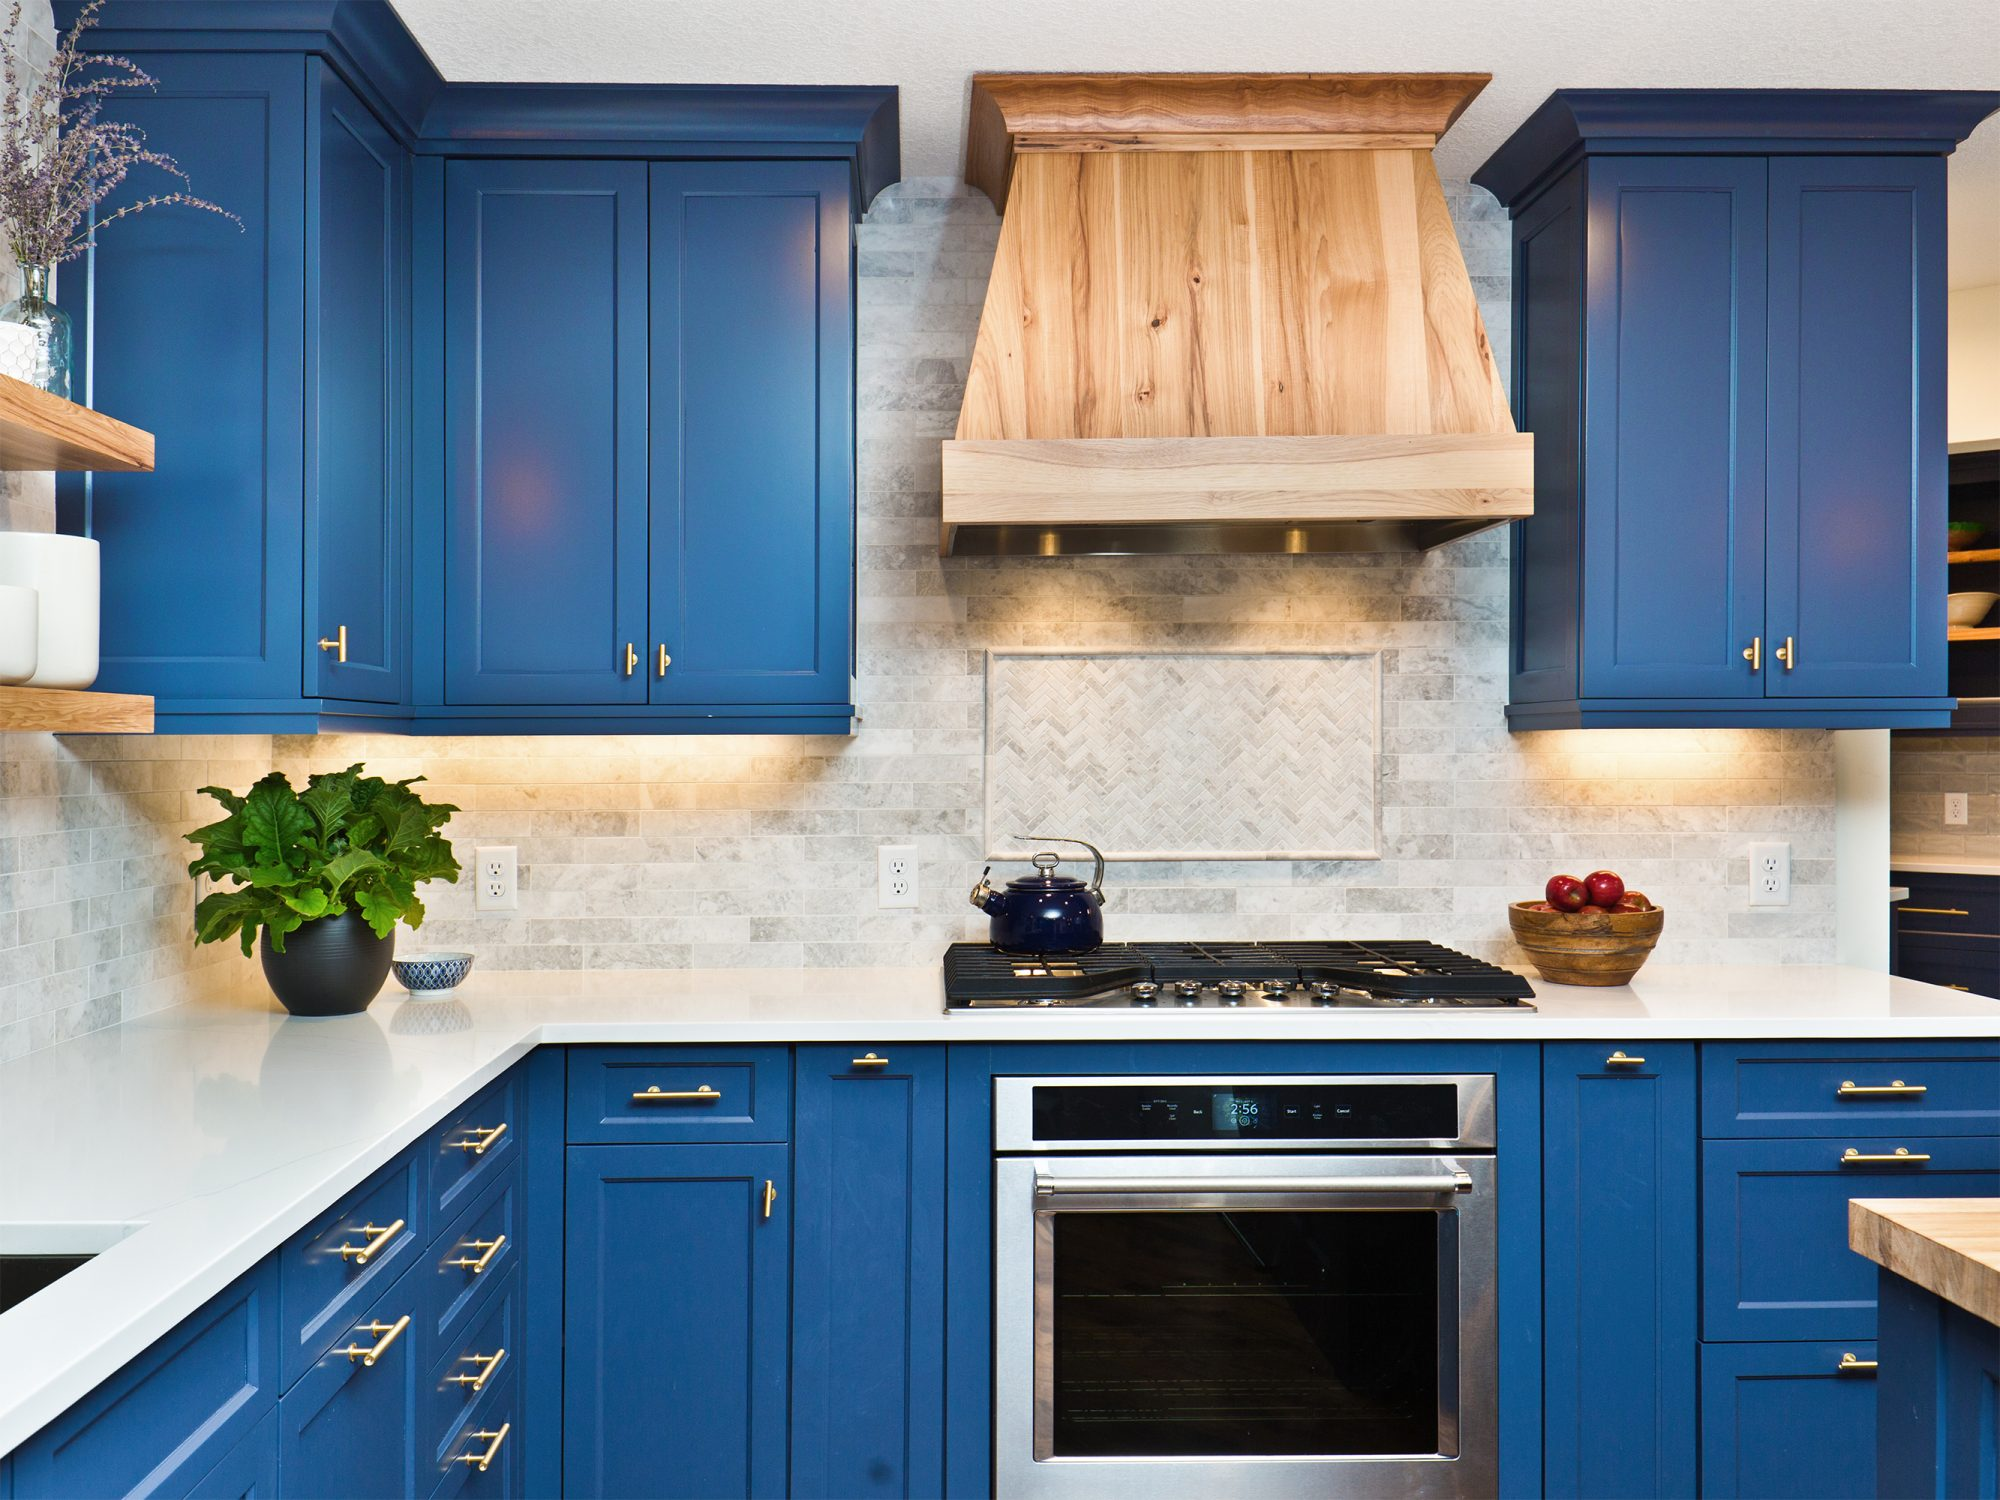 Home Improvement Remodeled Contemporary Kitchen design with painted cabinets